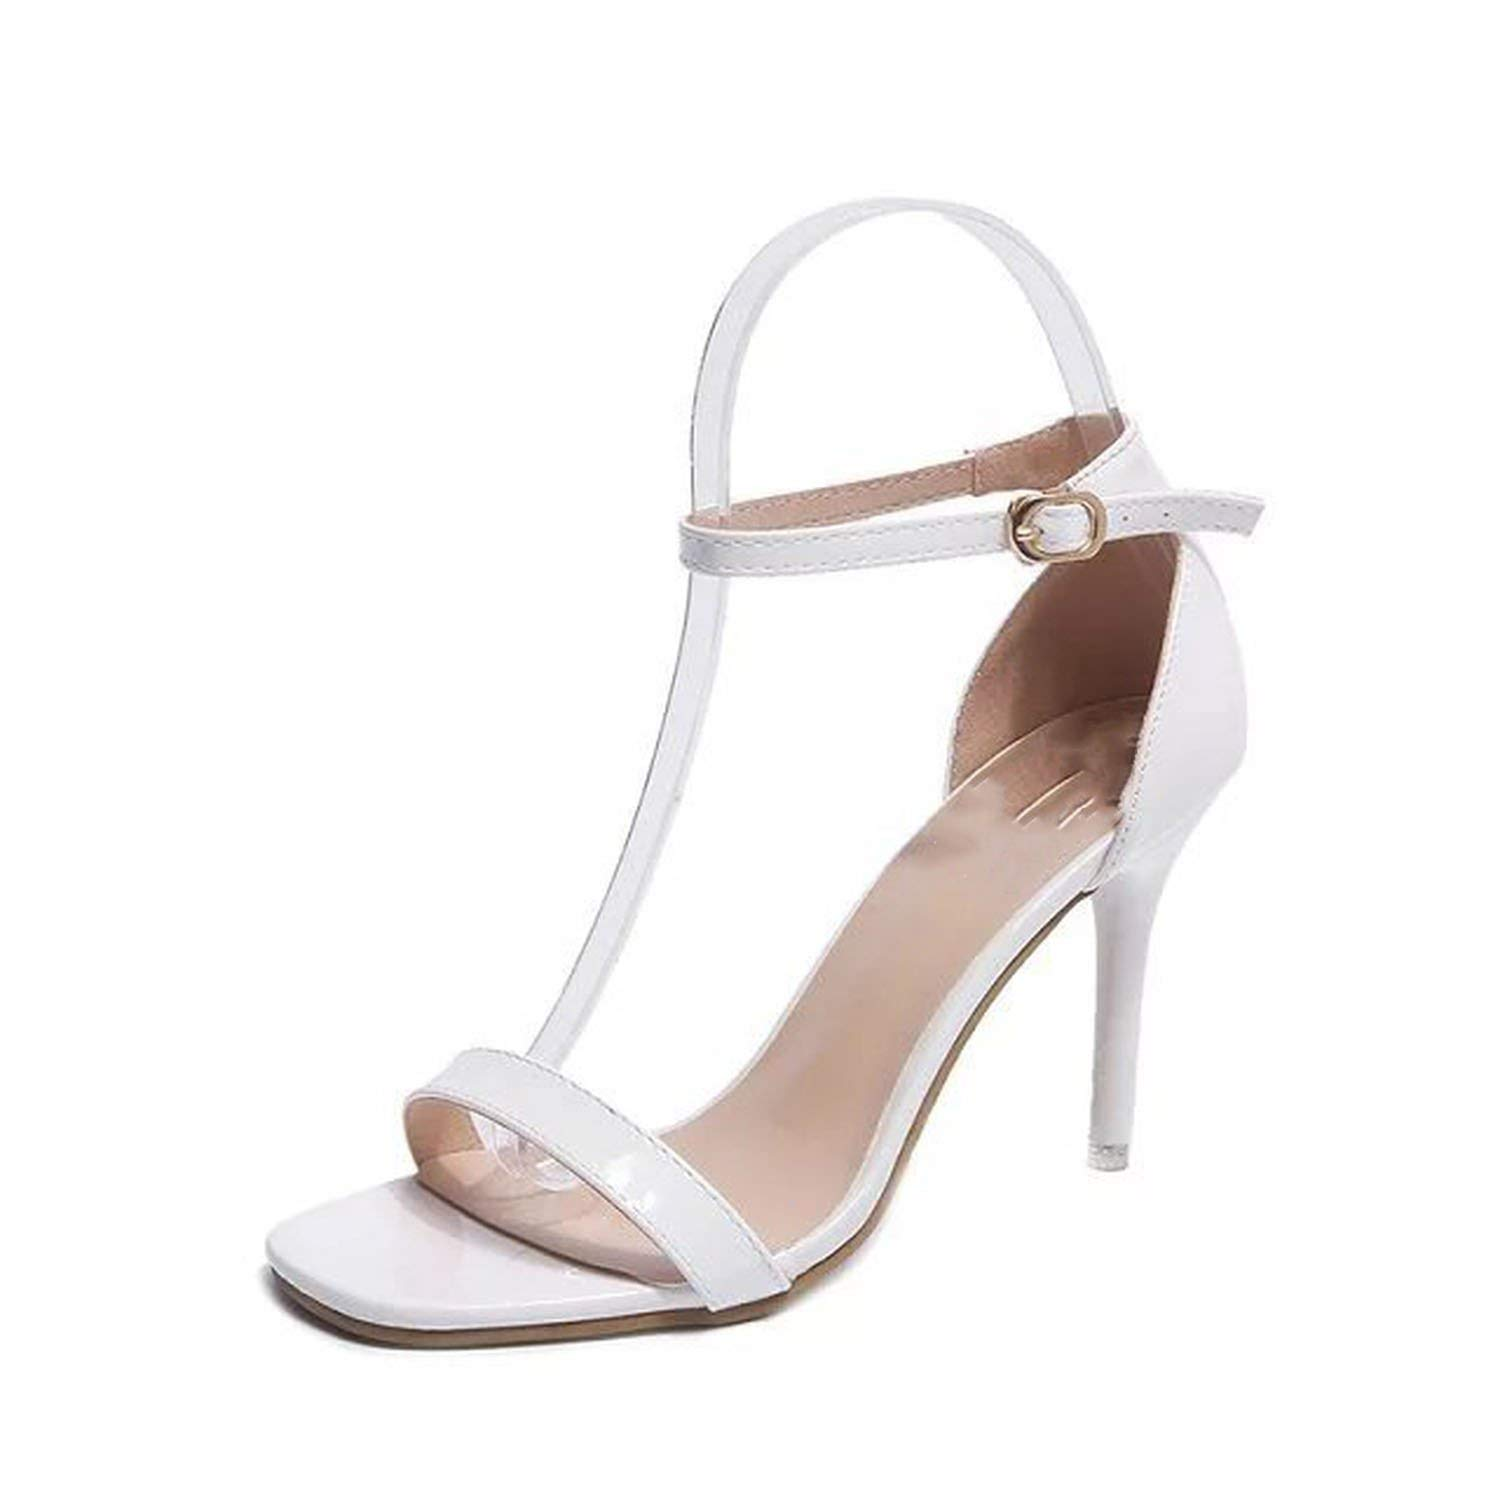 4fa946fb88ce Get Quotations · Collocation-Online Women Sandals High Heels Sandal Nude  Heels Sandals Concise Patent Leather Party Shoes